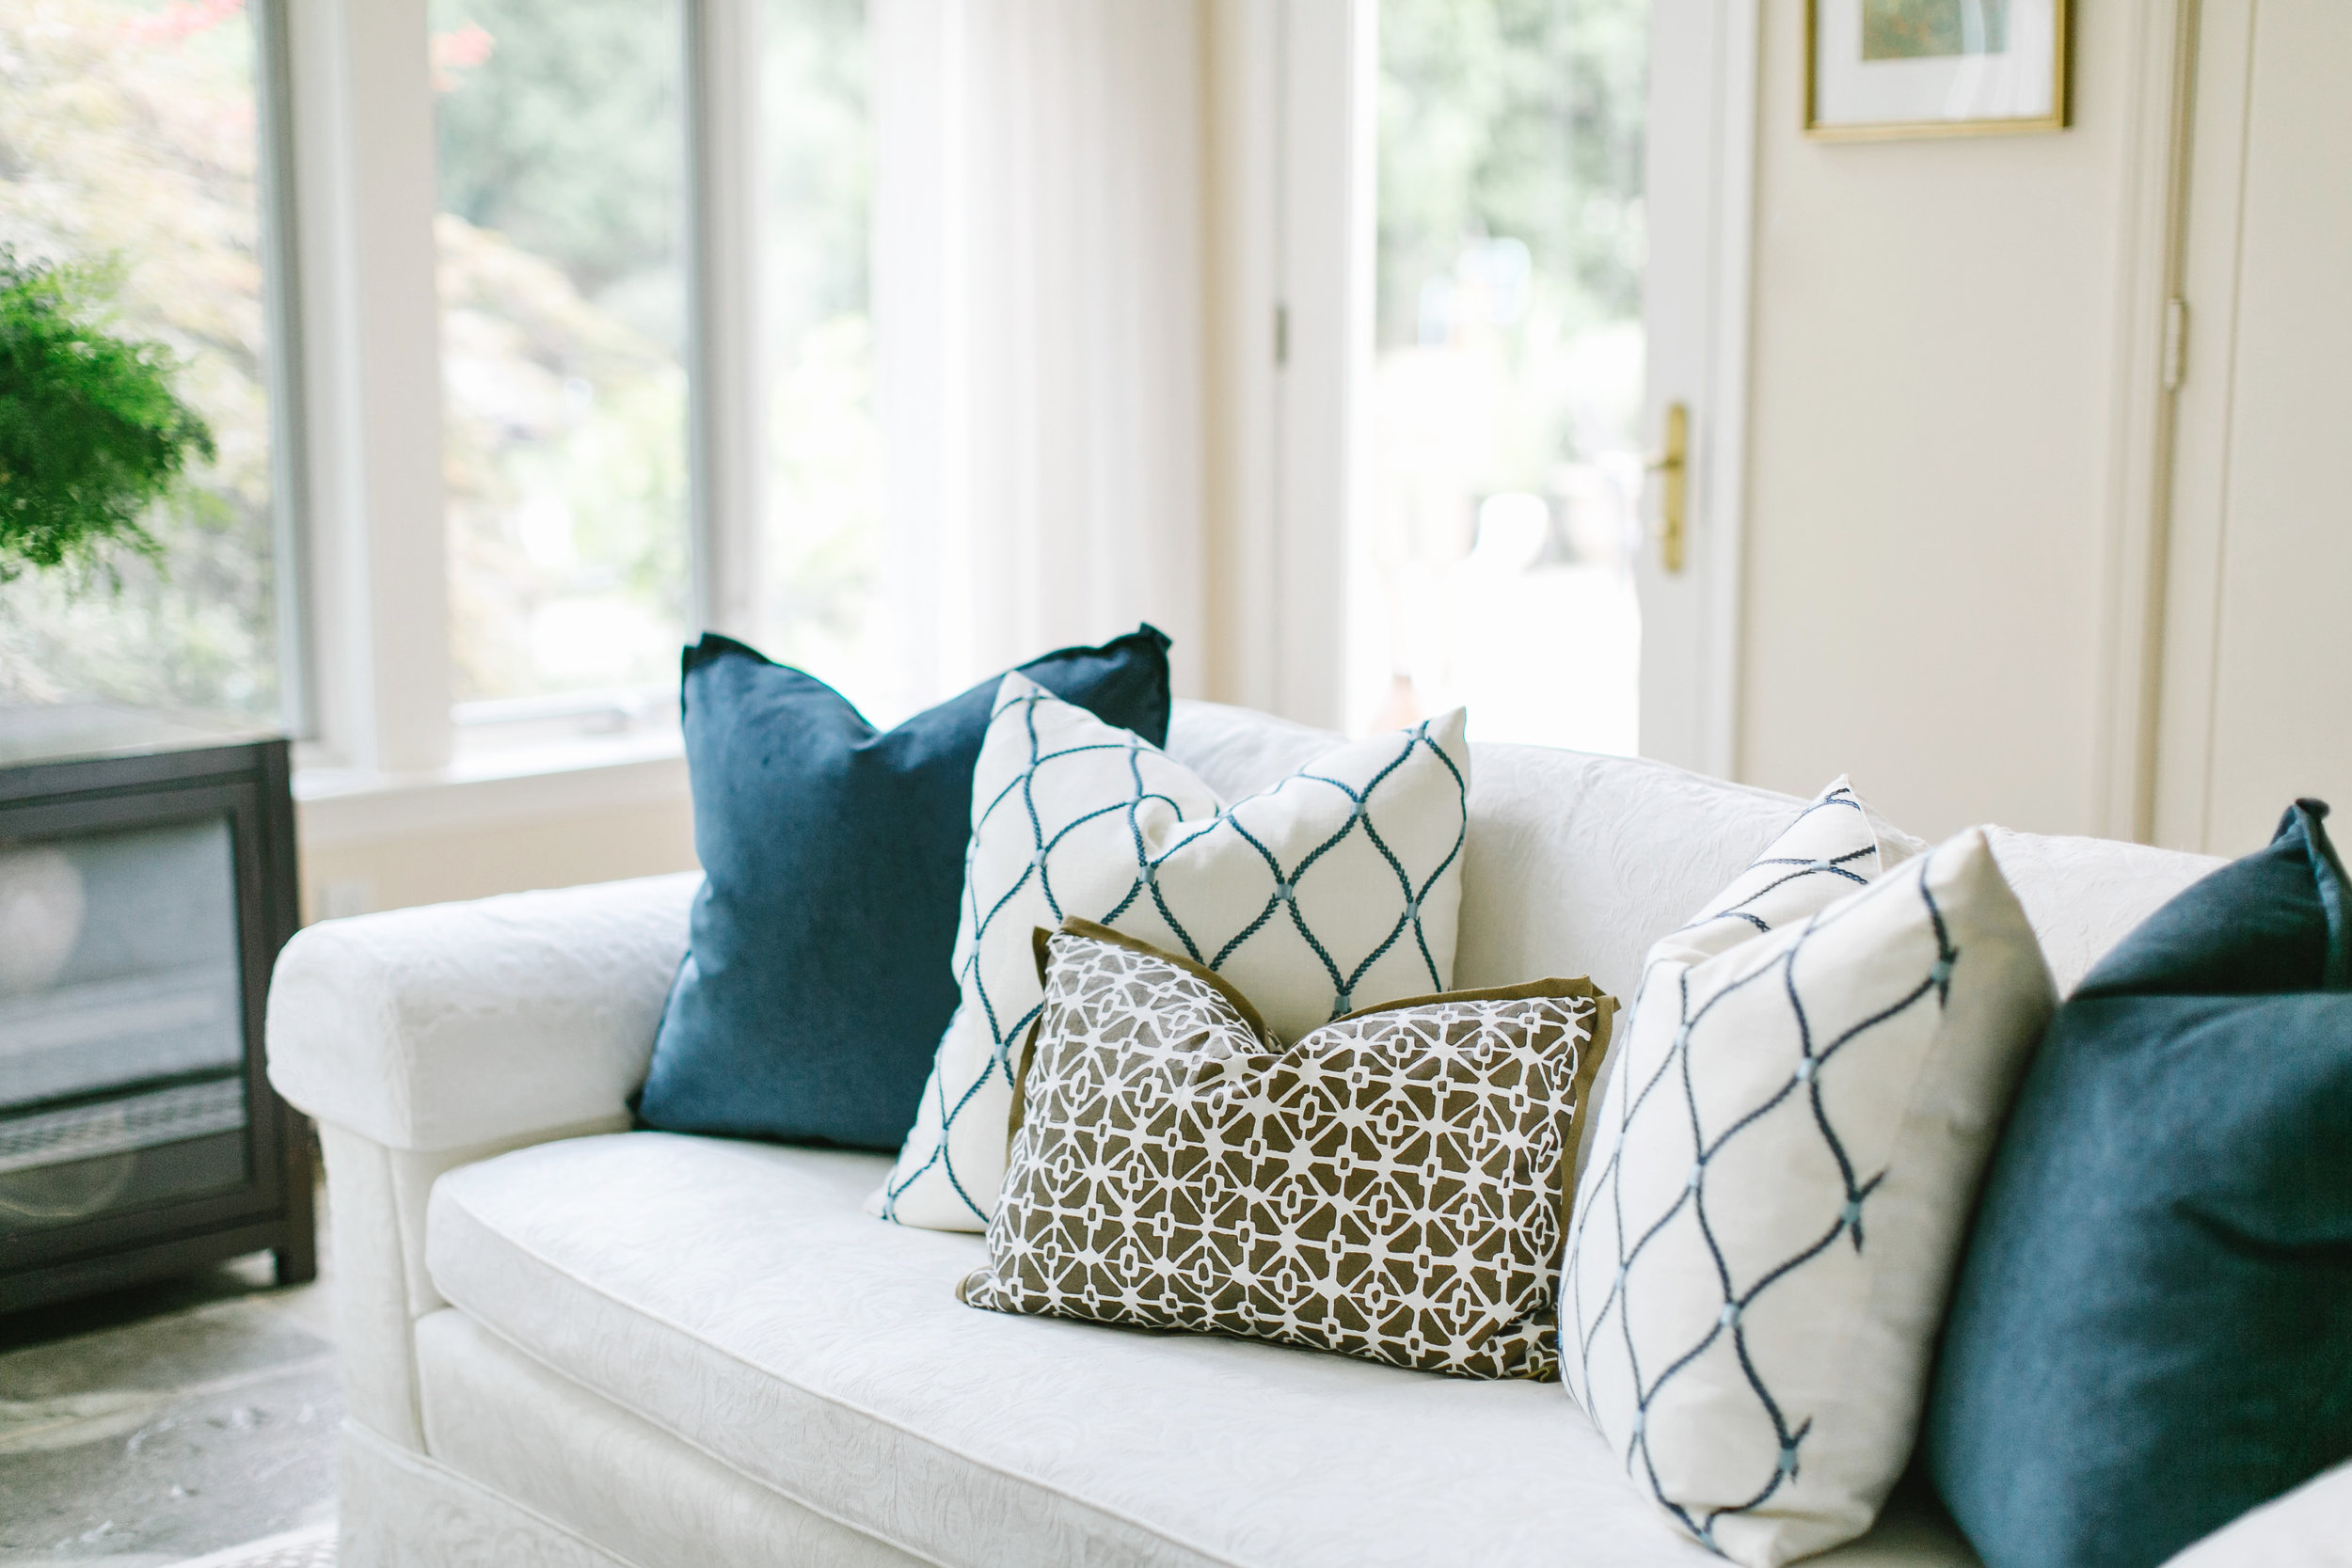 Unique upholstered accent pillows on a sofa